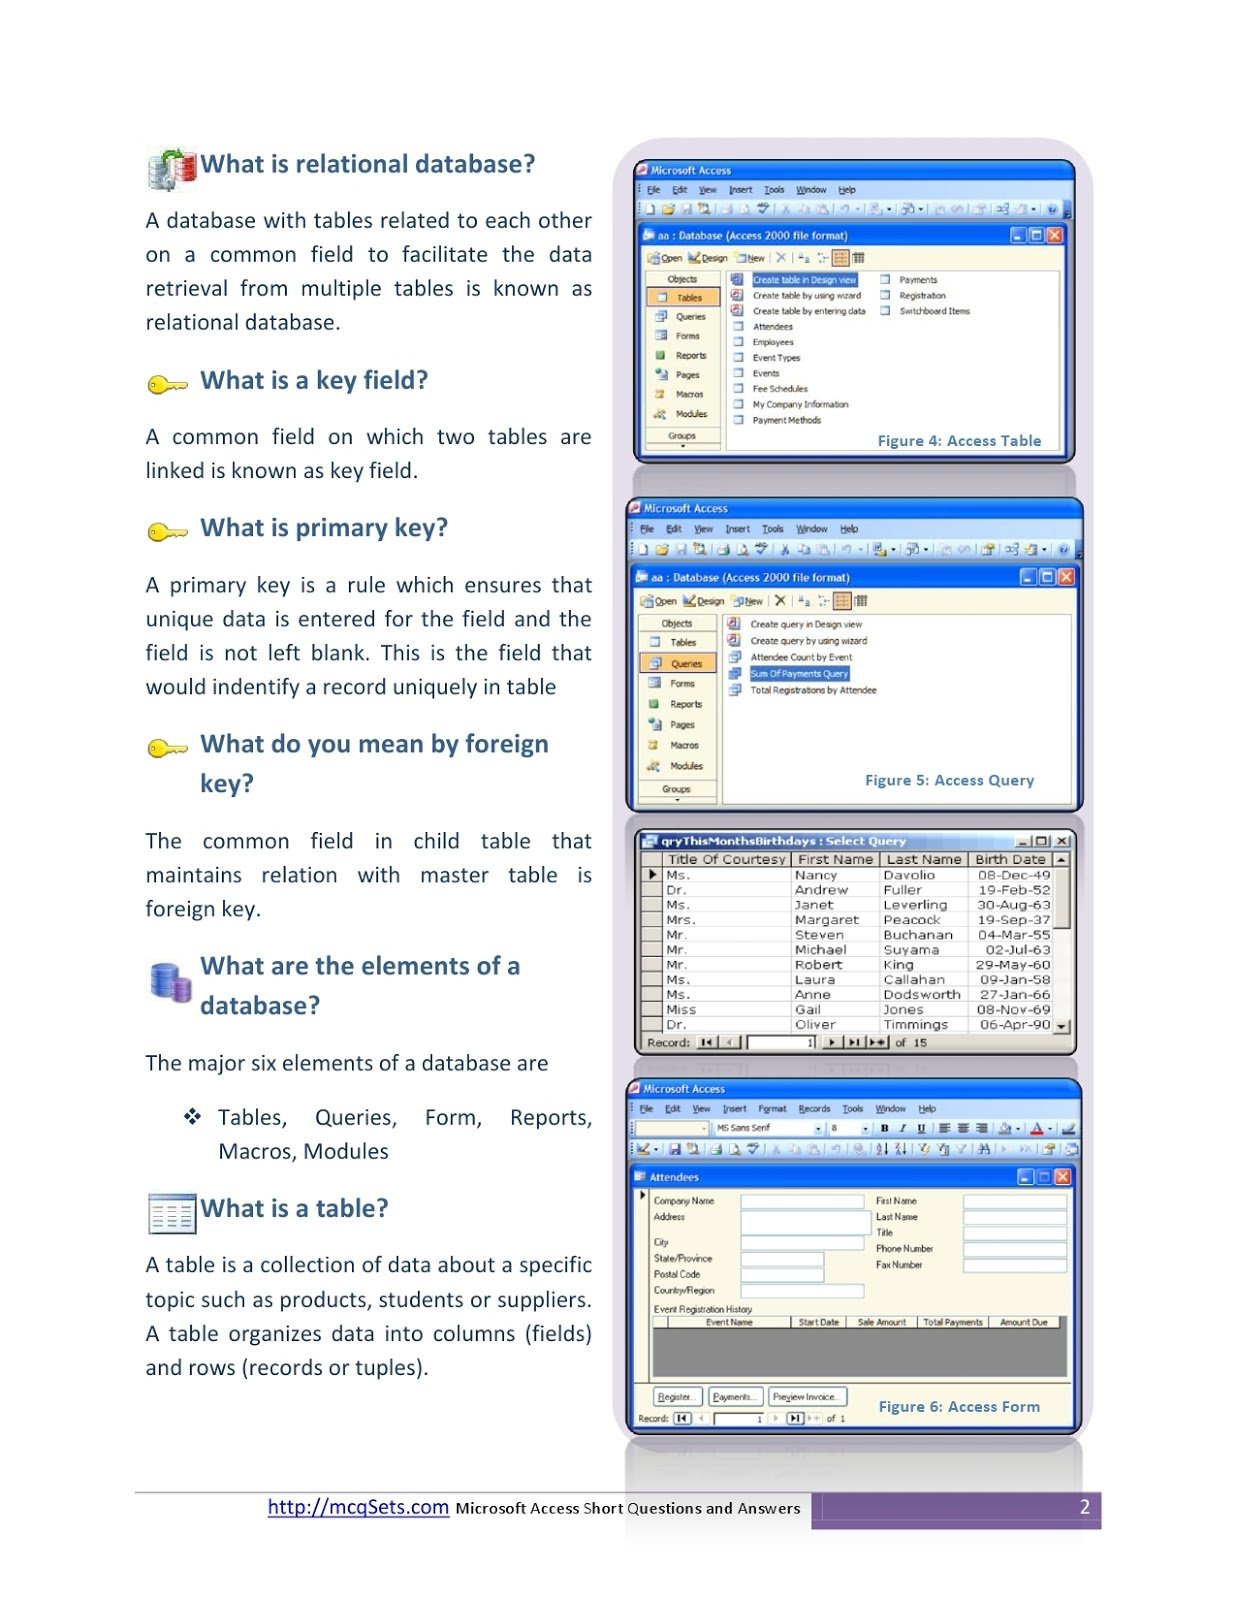 MS-Access-Short-Questions-Answers Pdf Download ~ Next